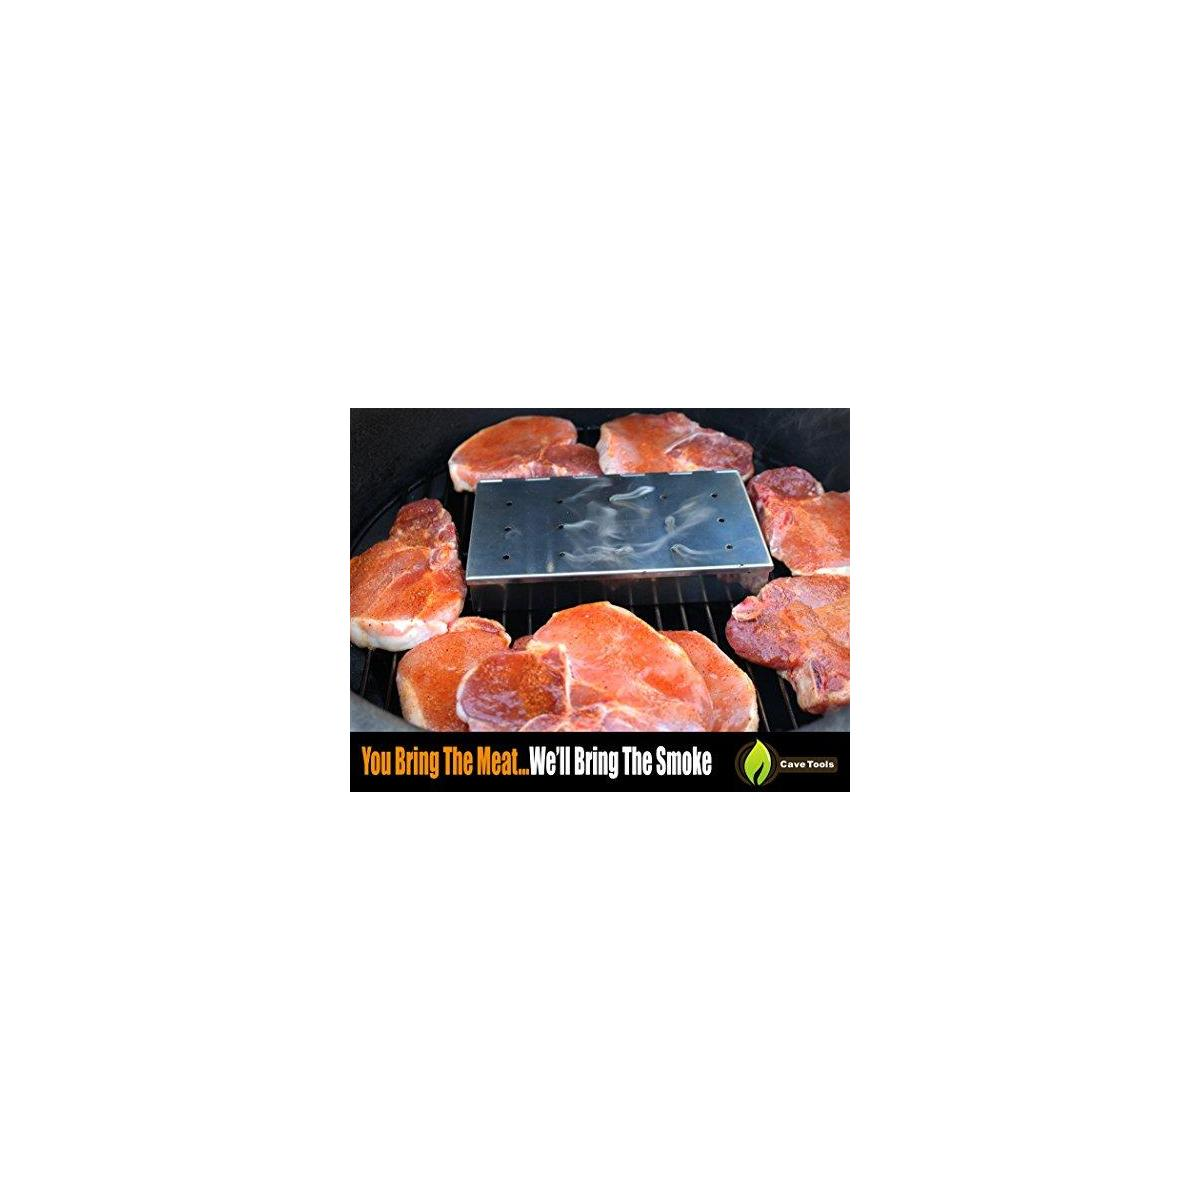 Meat Claws - Stainless Steel Pulled Pork SHREDDERS + Smoker Box Maximum Wood Chip Capacity - Charcoal & Gas Grill BBQ Smoking Hinged Lid - Best Grilling Accessories & Barbecue Utensils